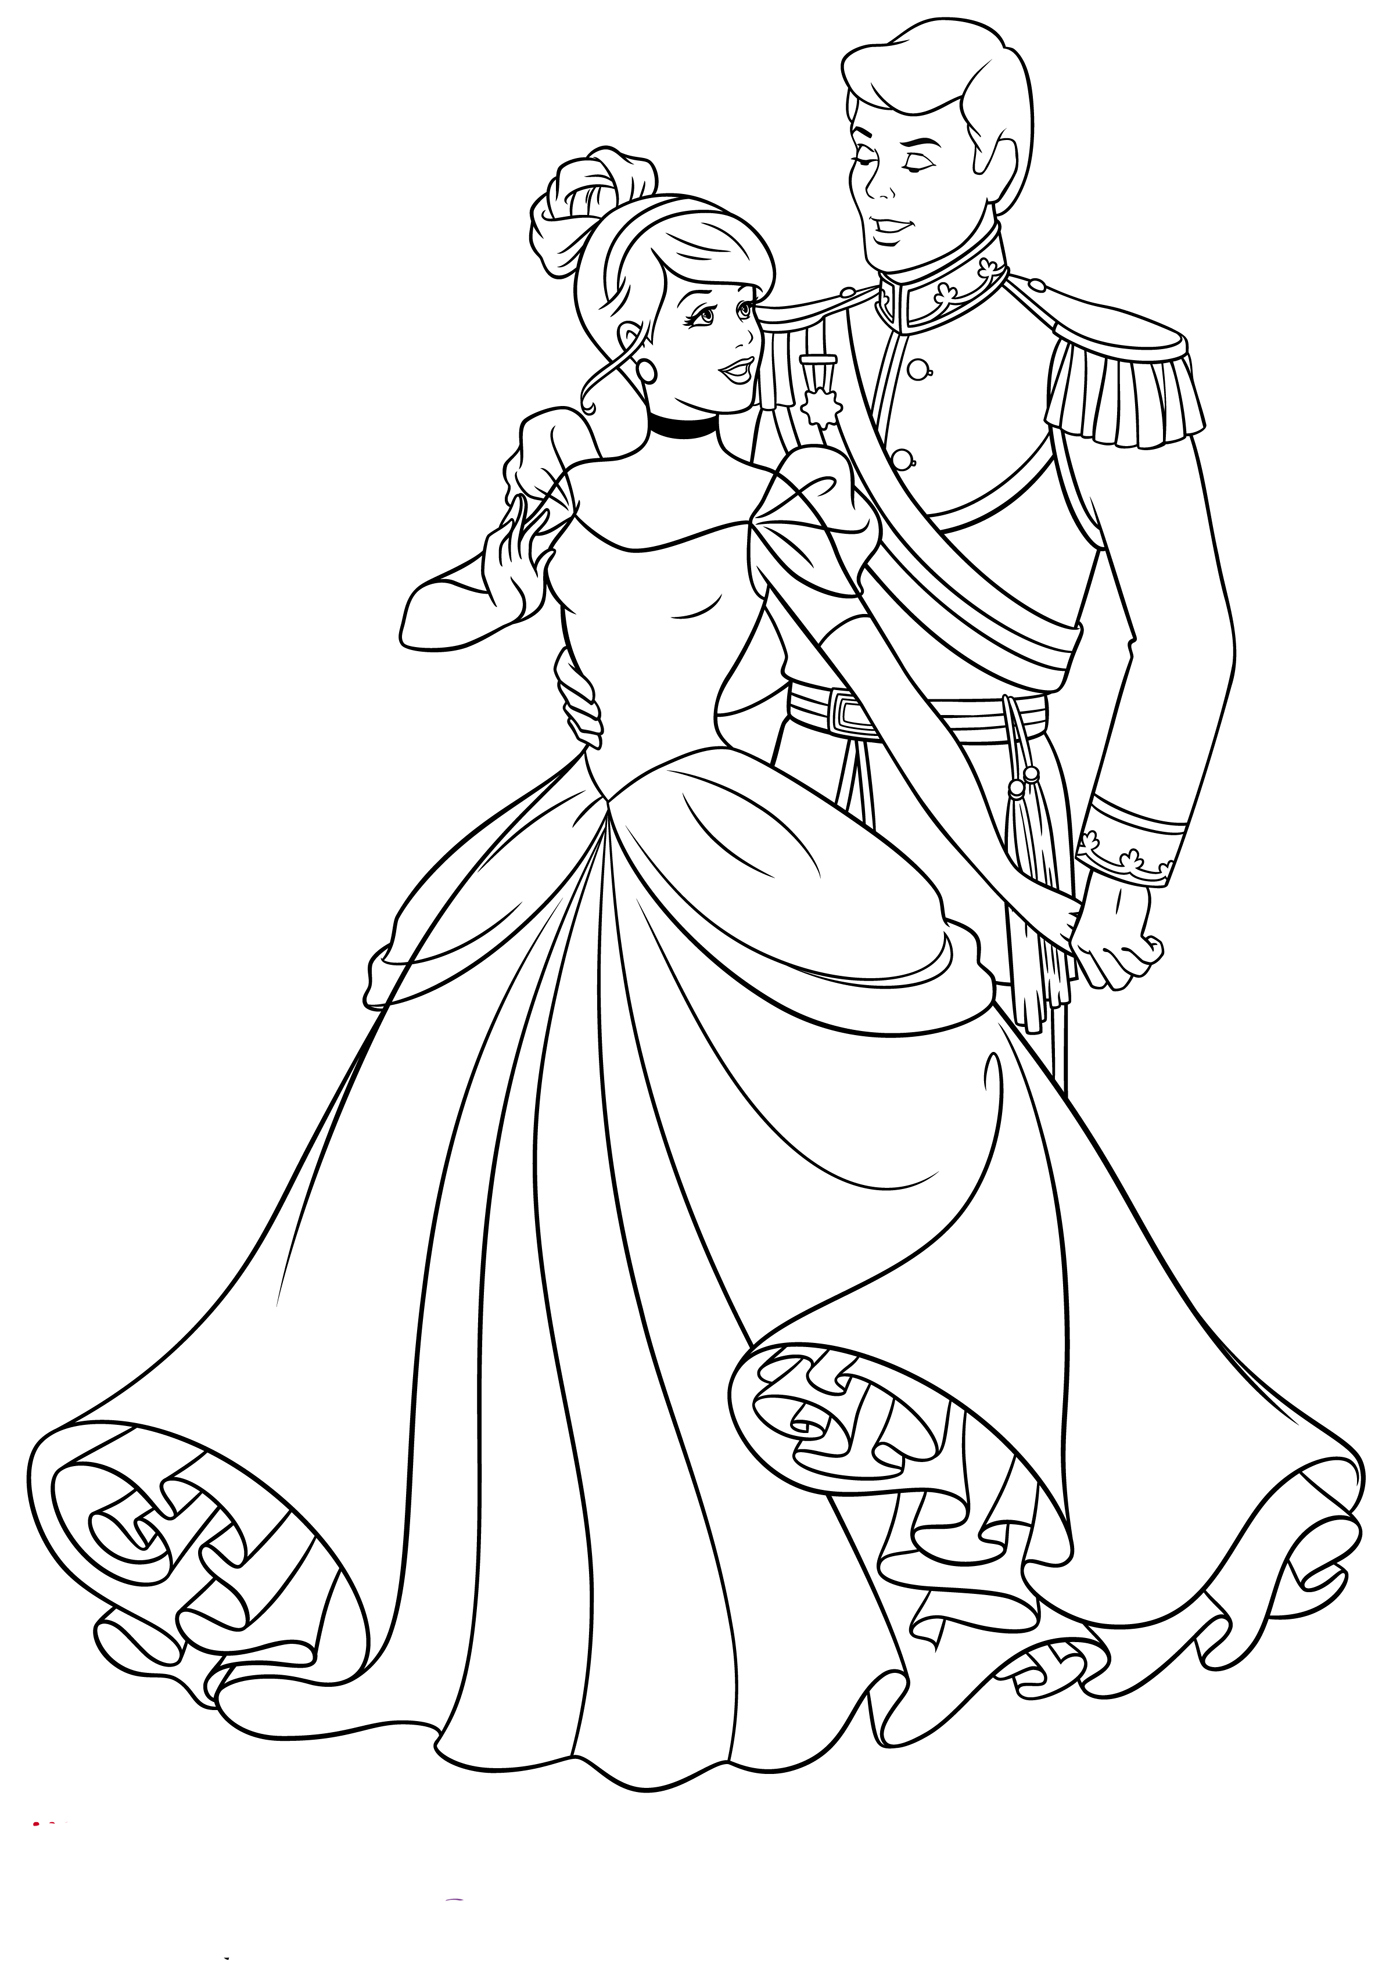 coloring cinderella pictures ella is here cinderella disney coloring pages cinderella pictures coloring